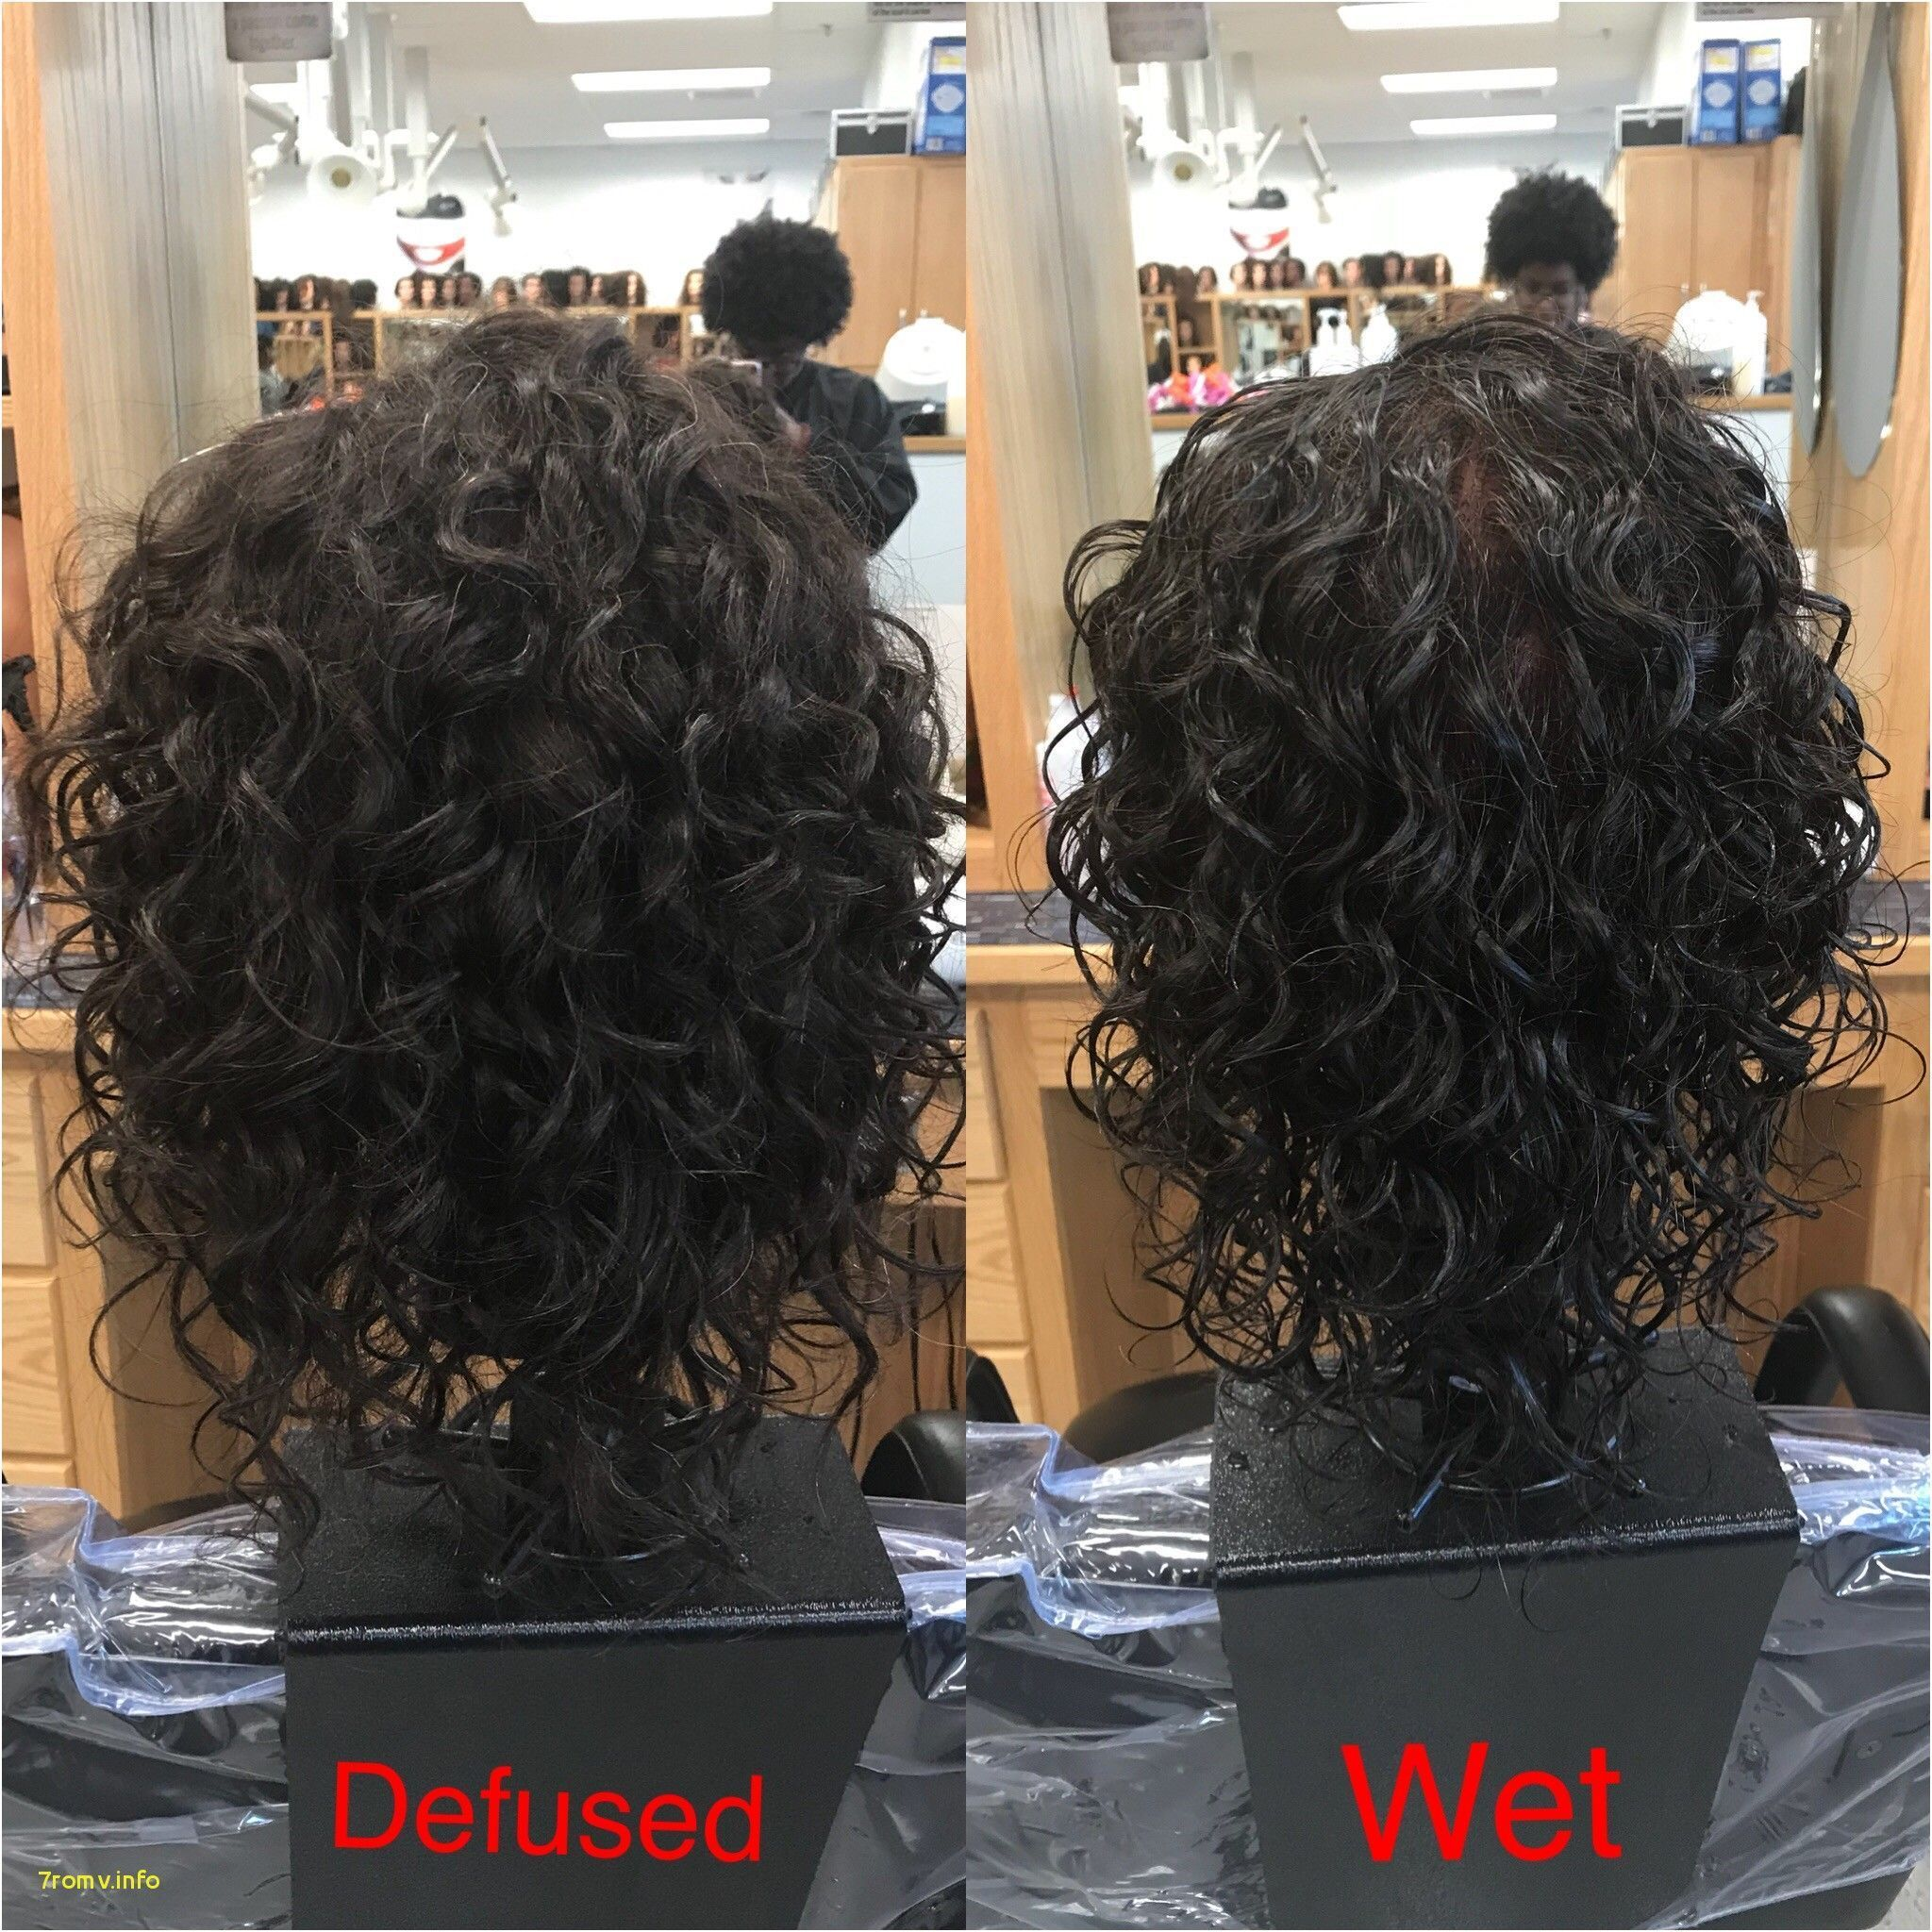 Spiral Perms Before And After Inspirational Root Perm Before And After Caitlyn Nell Barstow Spiral Perms In 2020 Long Hair Perm Permed Hairstyles Spiral Perm